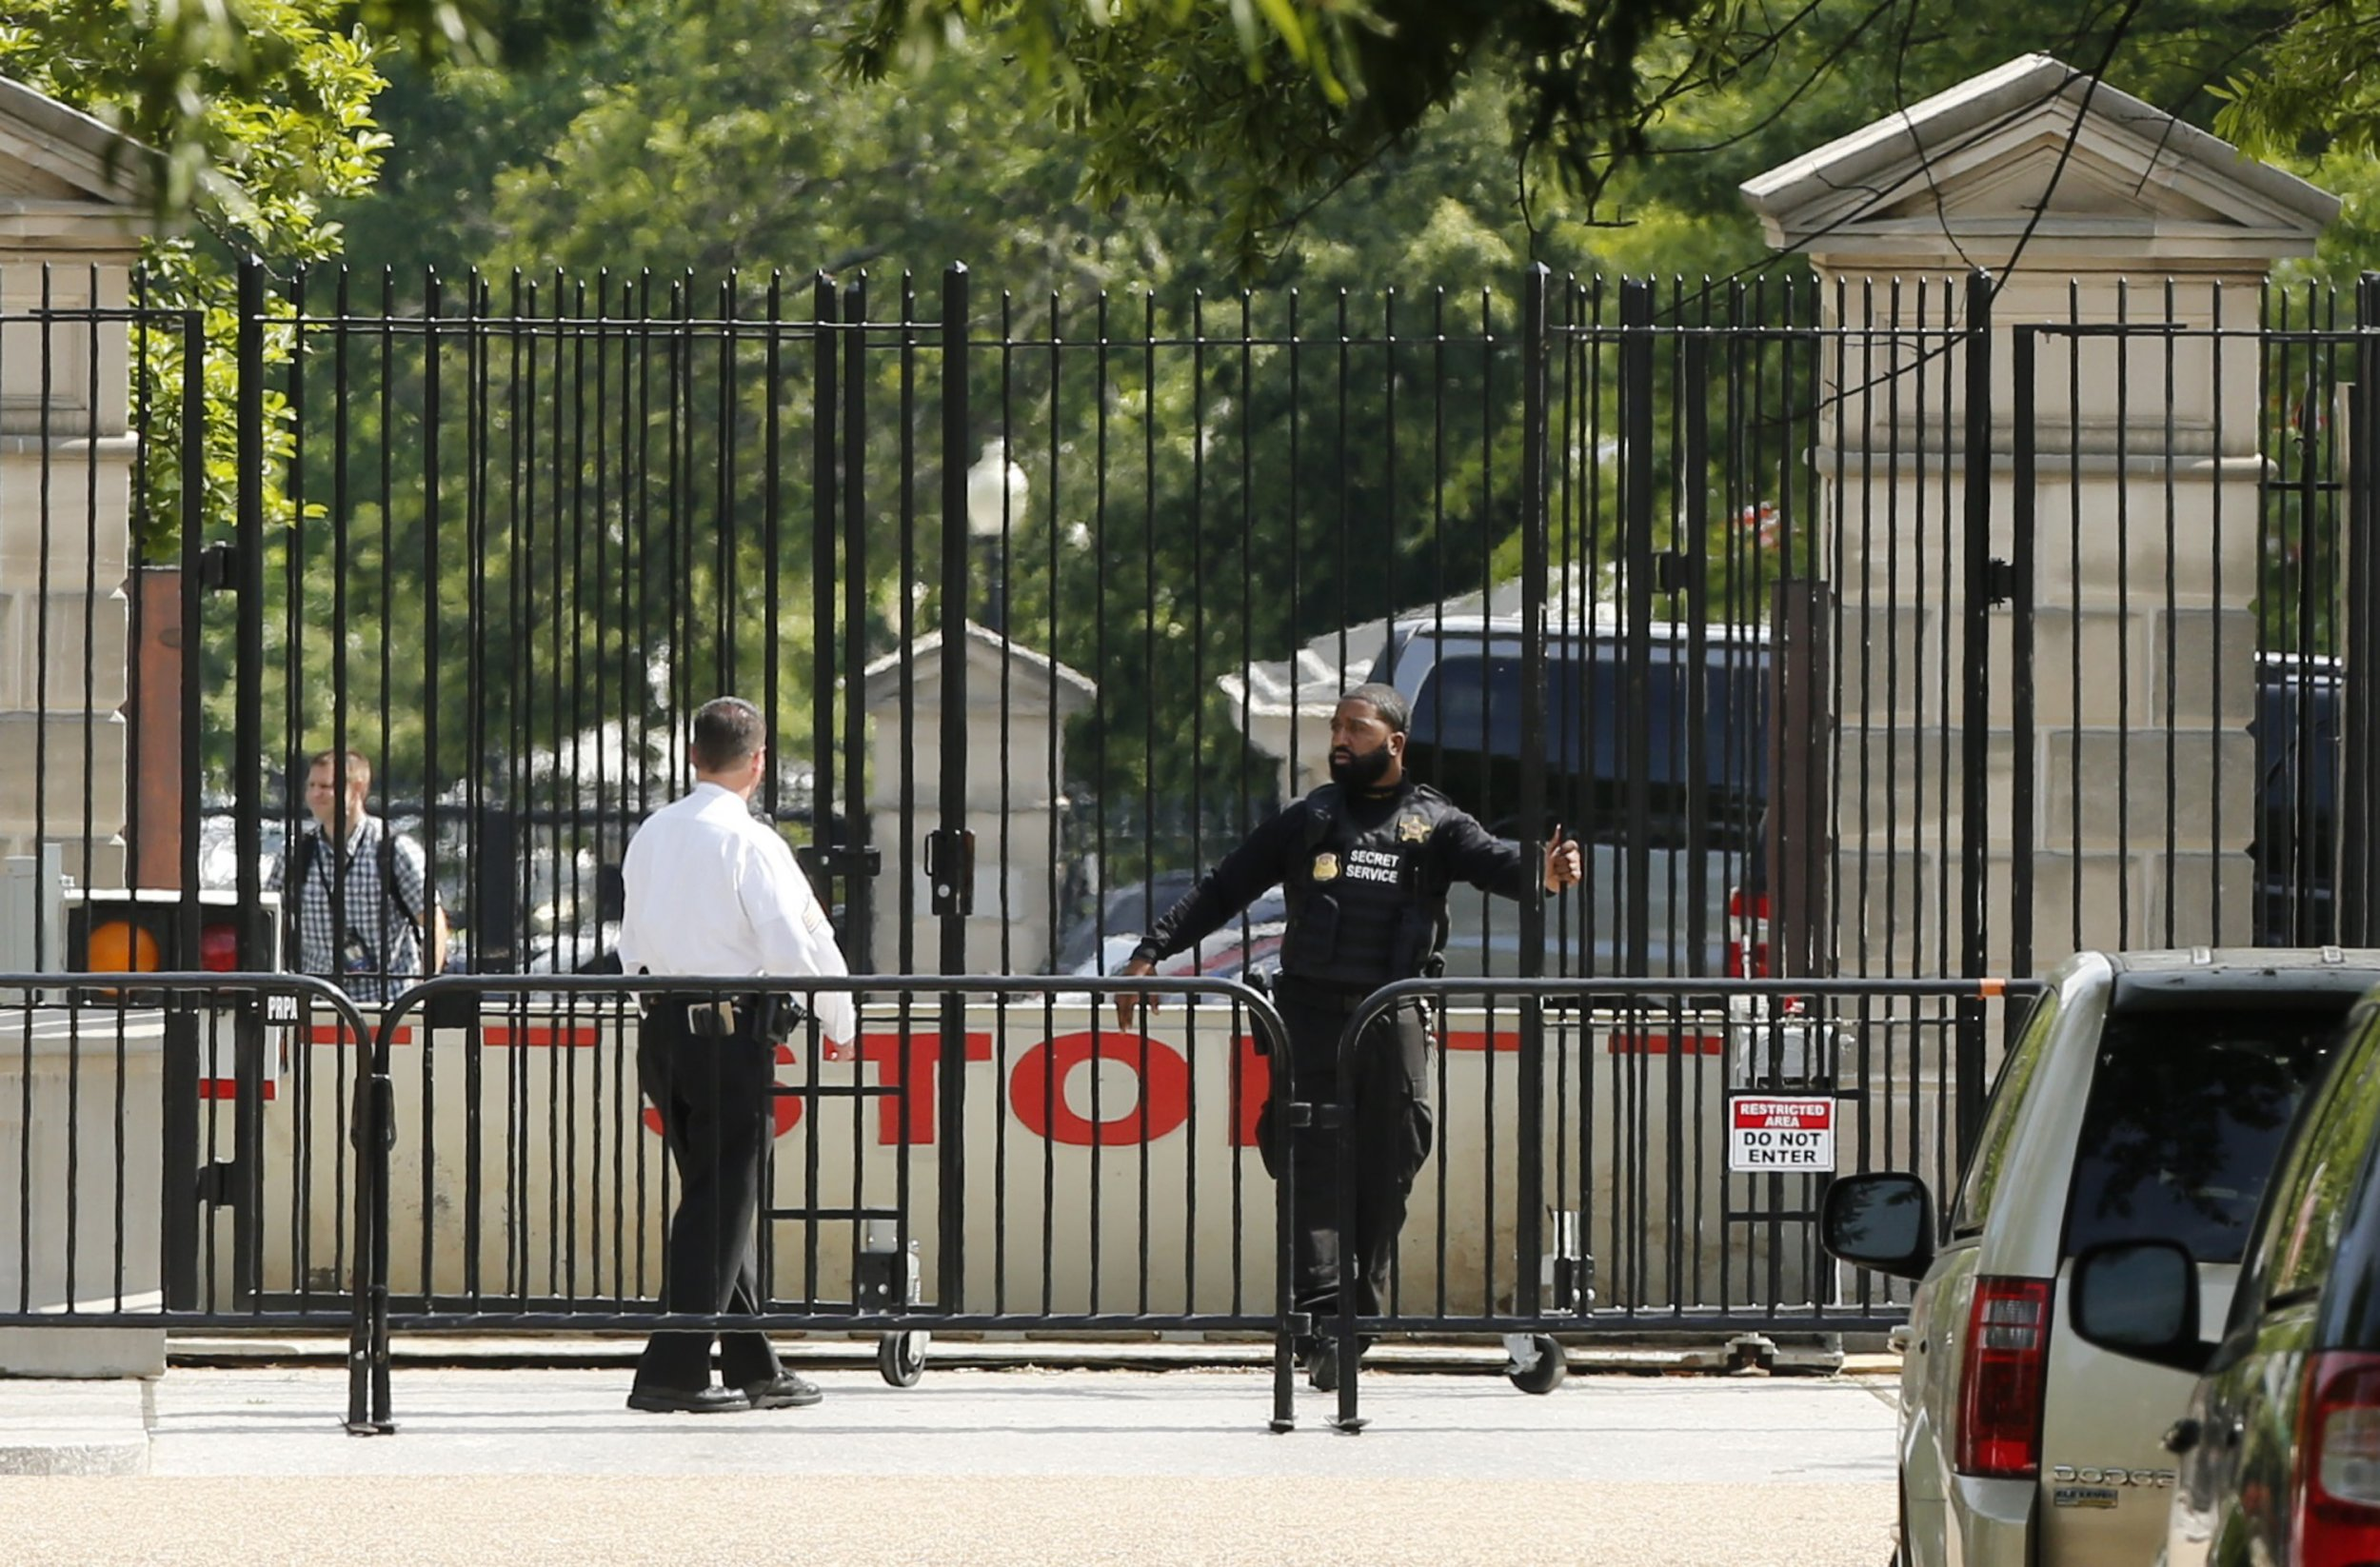 White House Locked Down After Man Shot by Secret Service Nearby